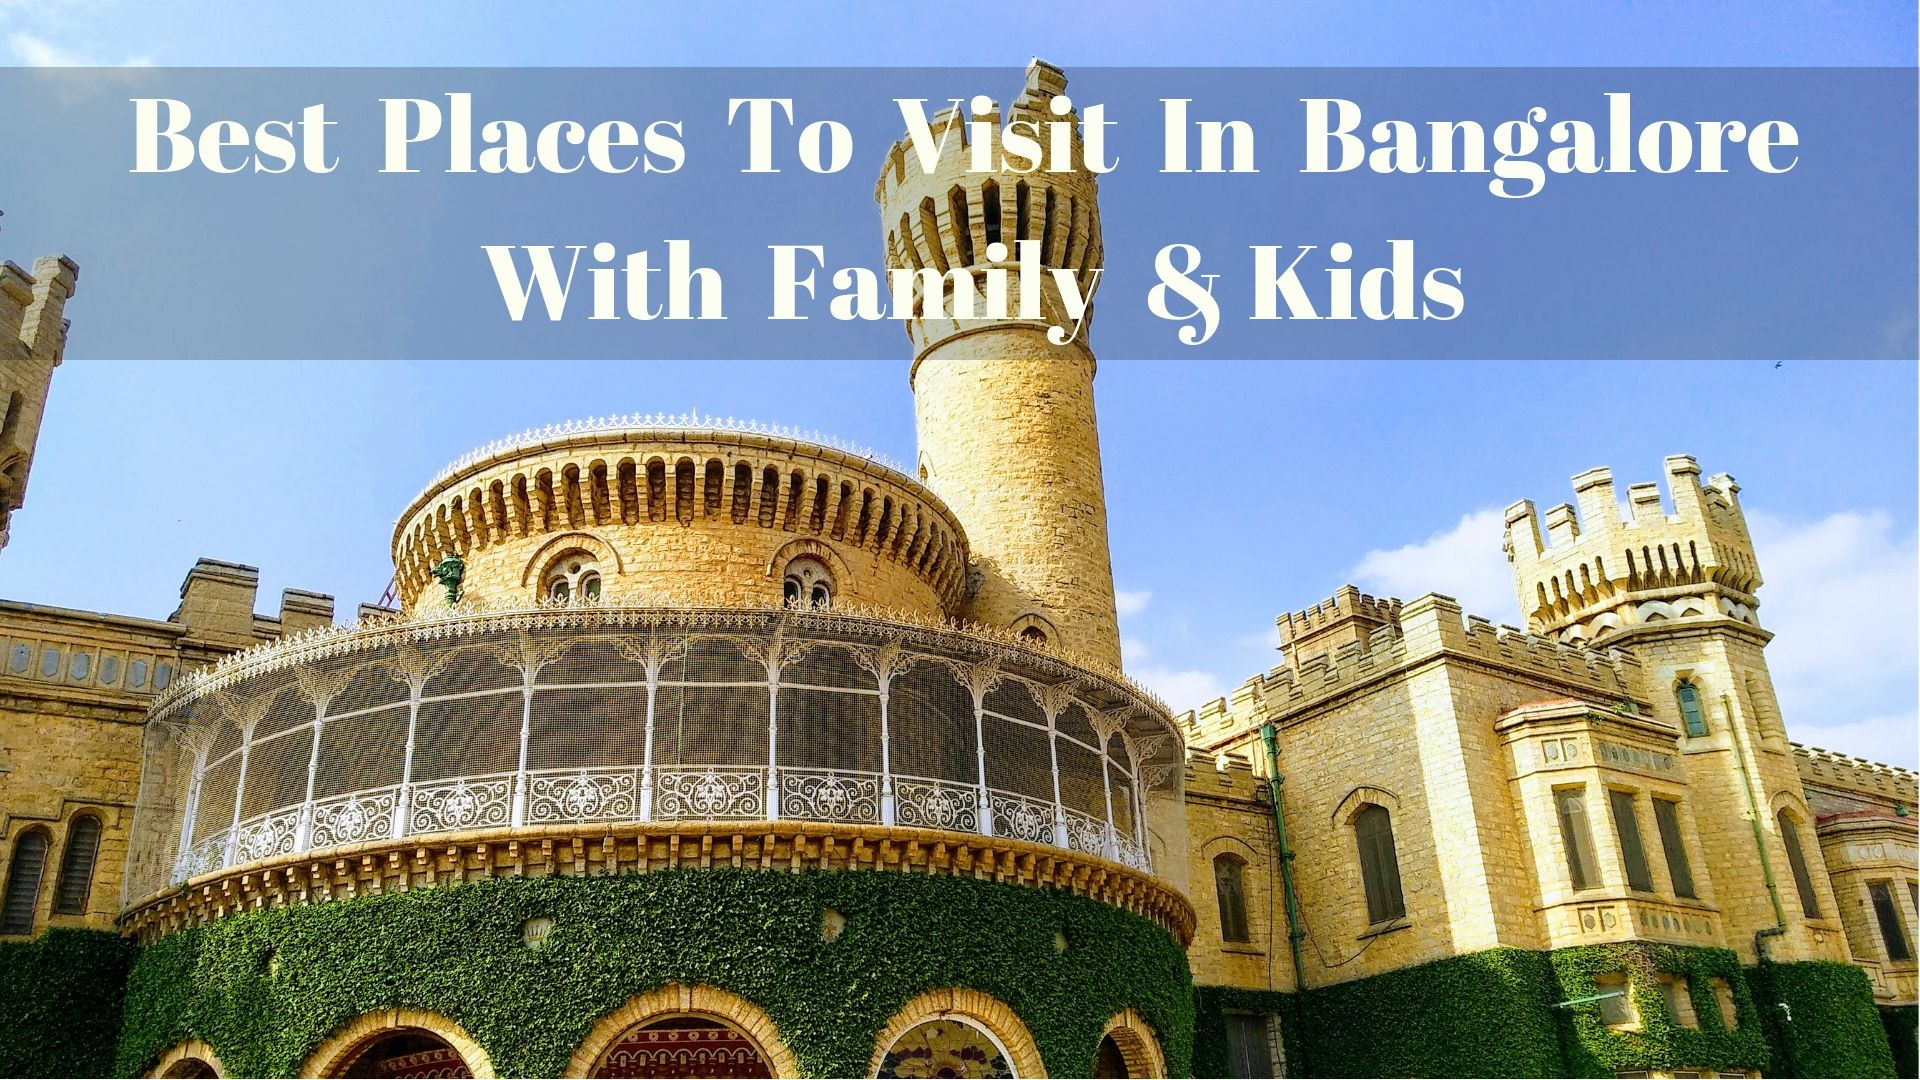 Best Places To Visit In Bangalore For Families Kids